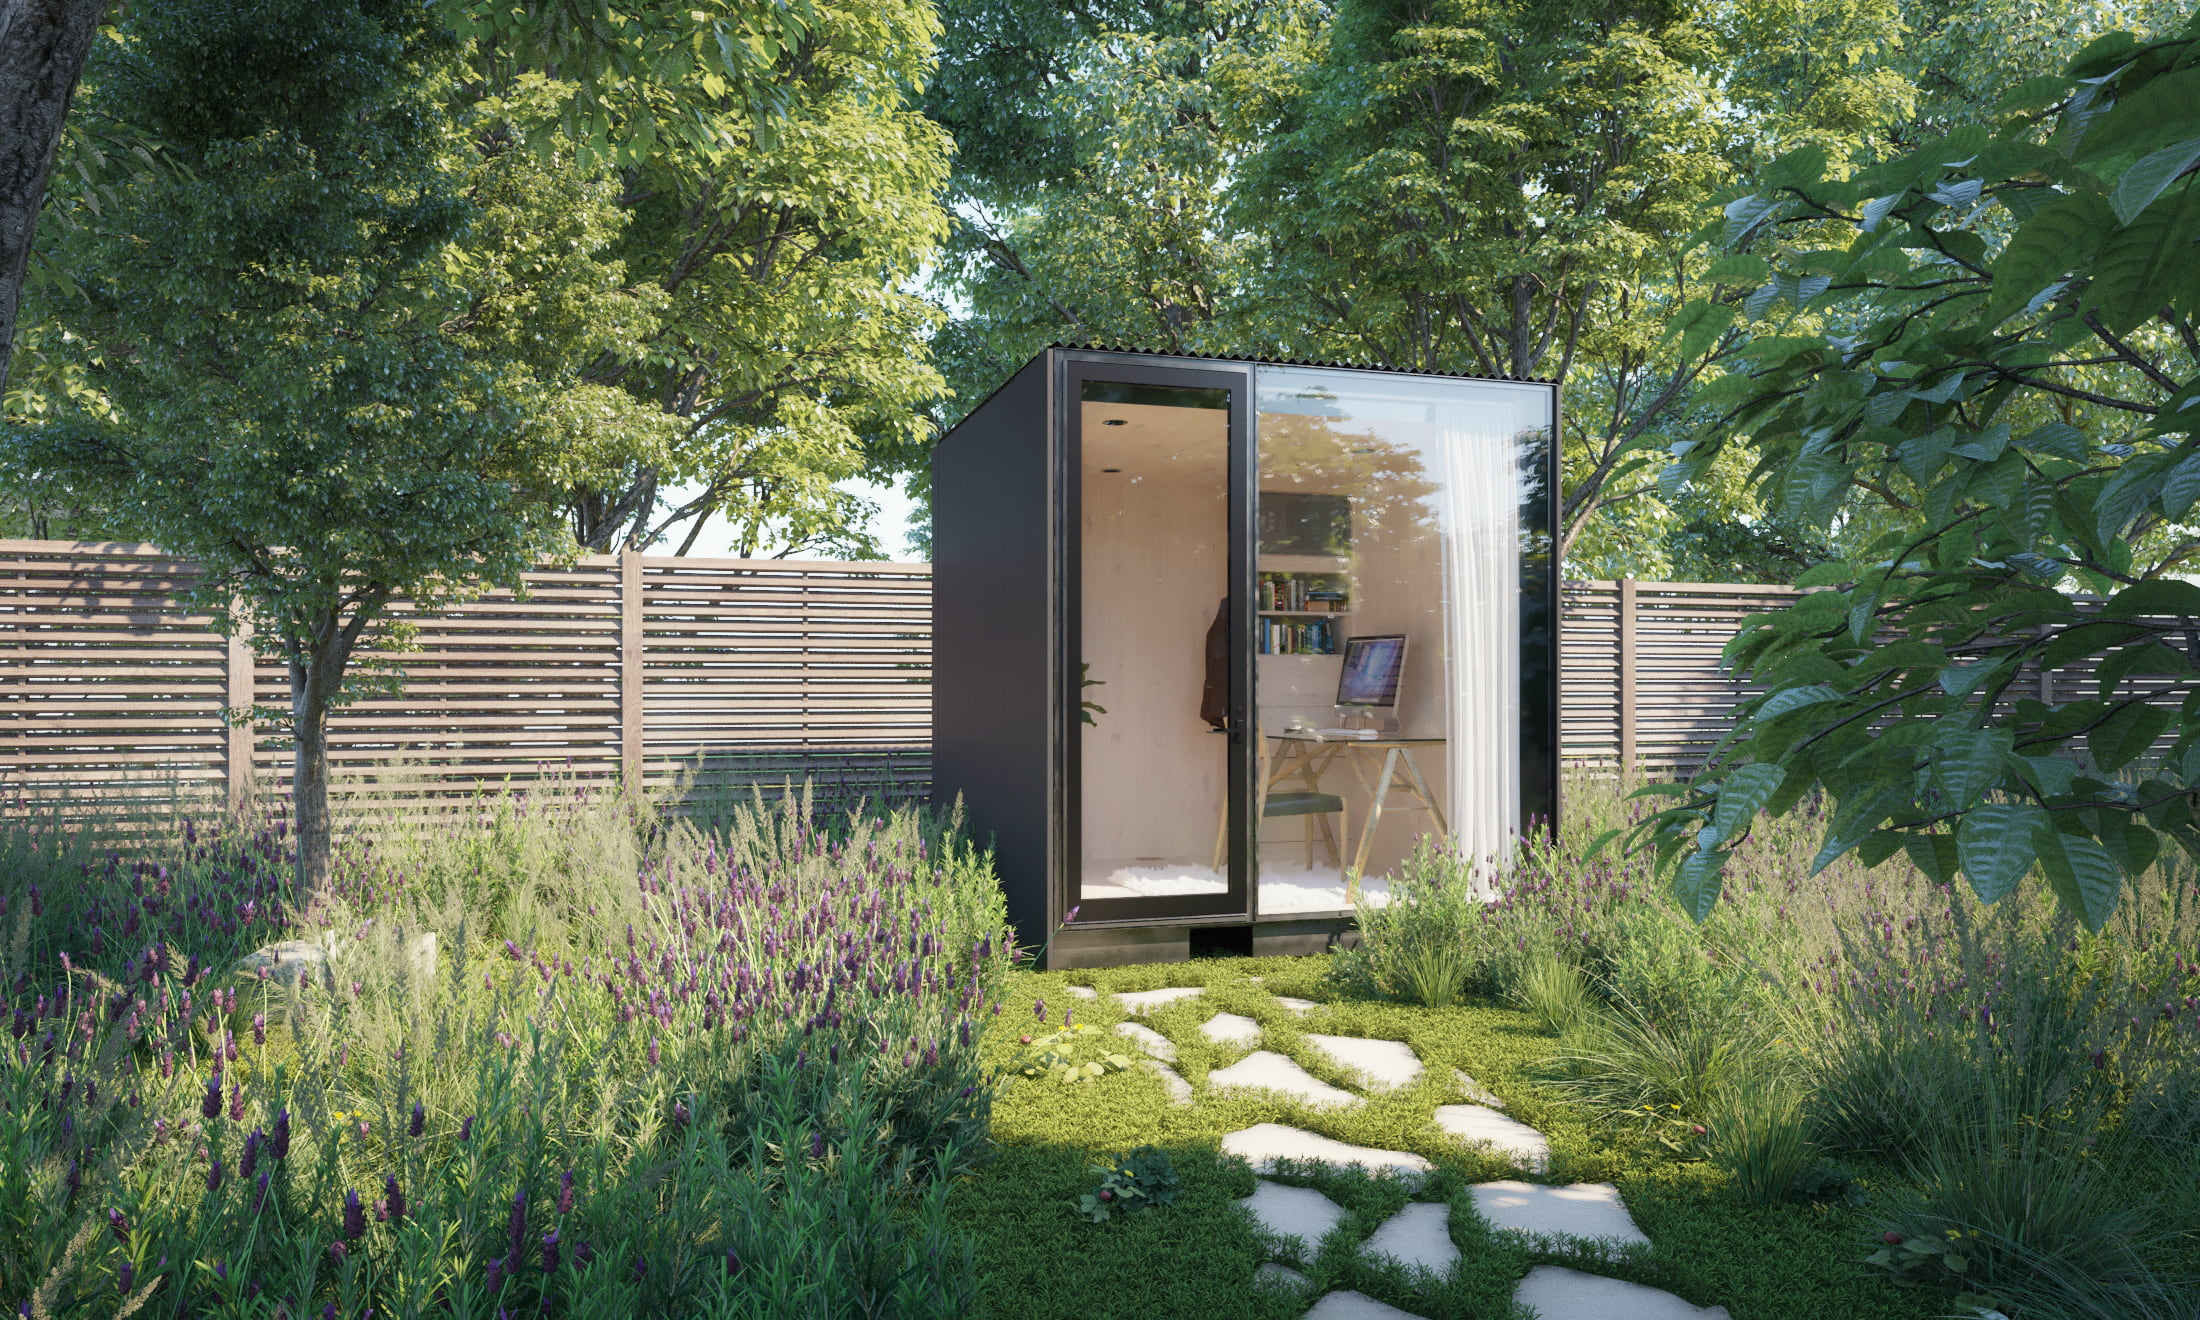 View of a backyard office in a garden with concrete steps in grass